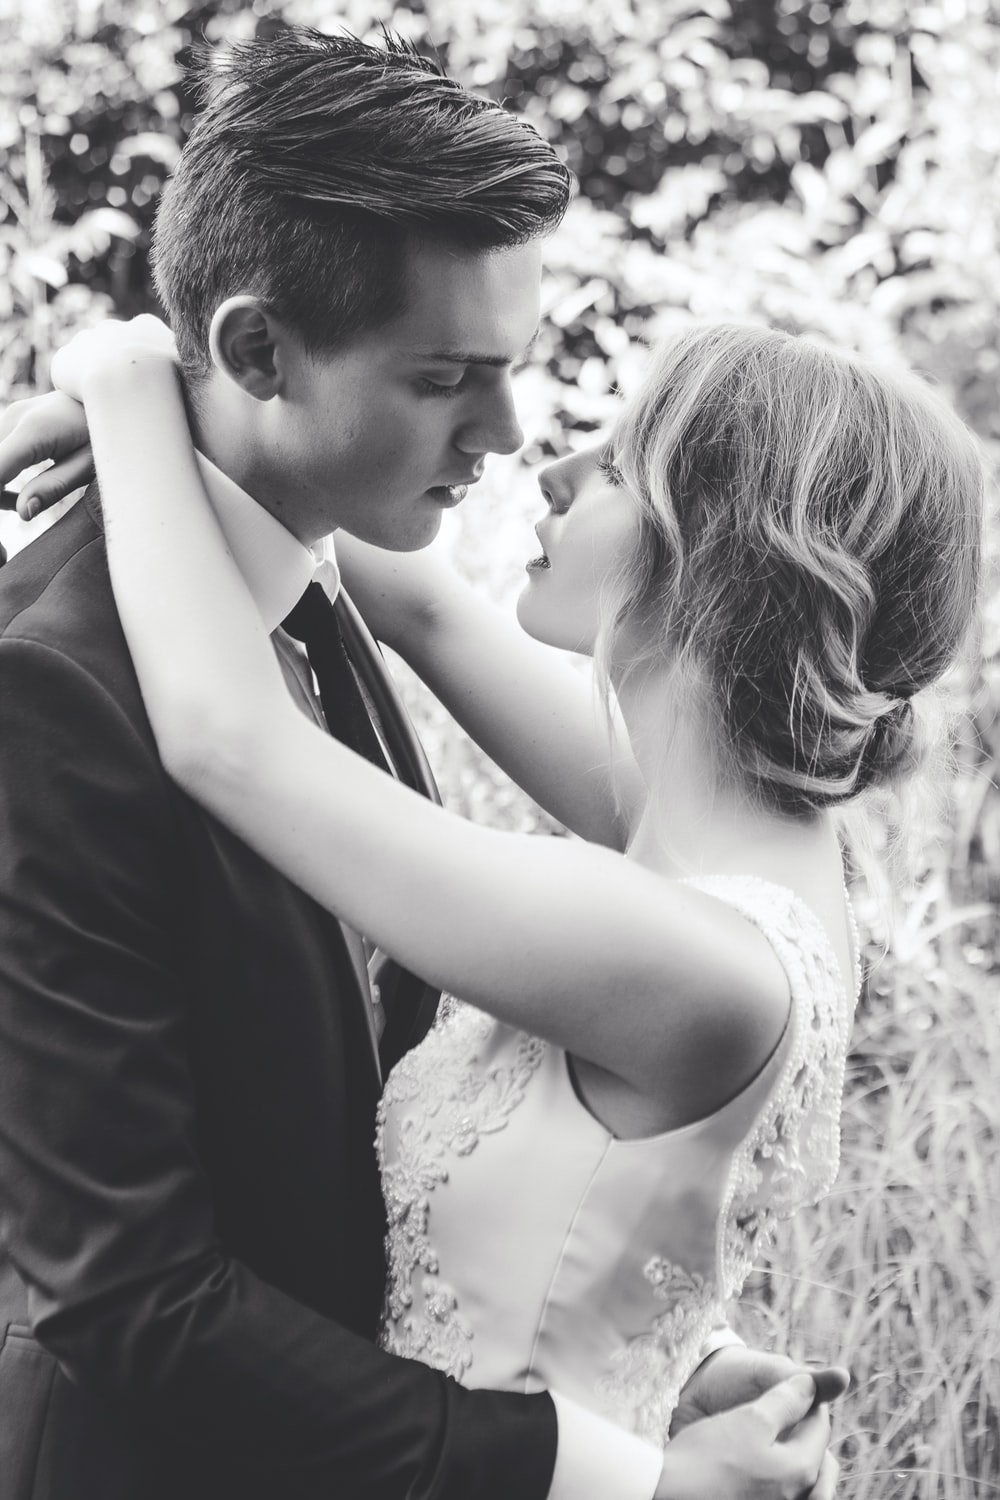 A Bride And Groom Hugging About To Kiss